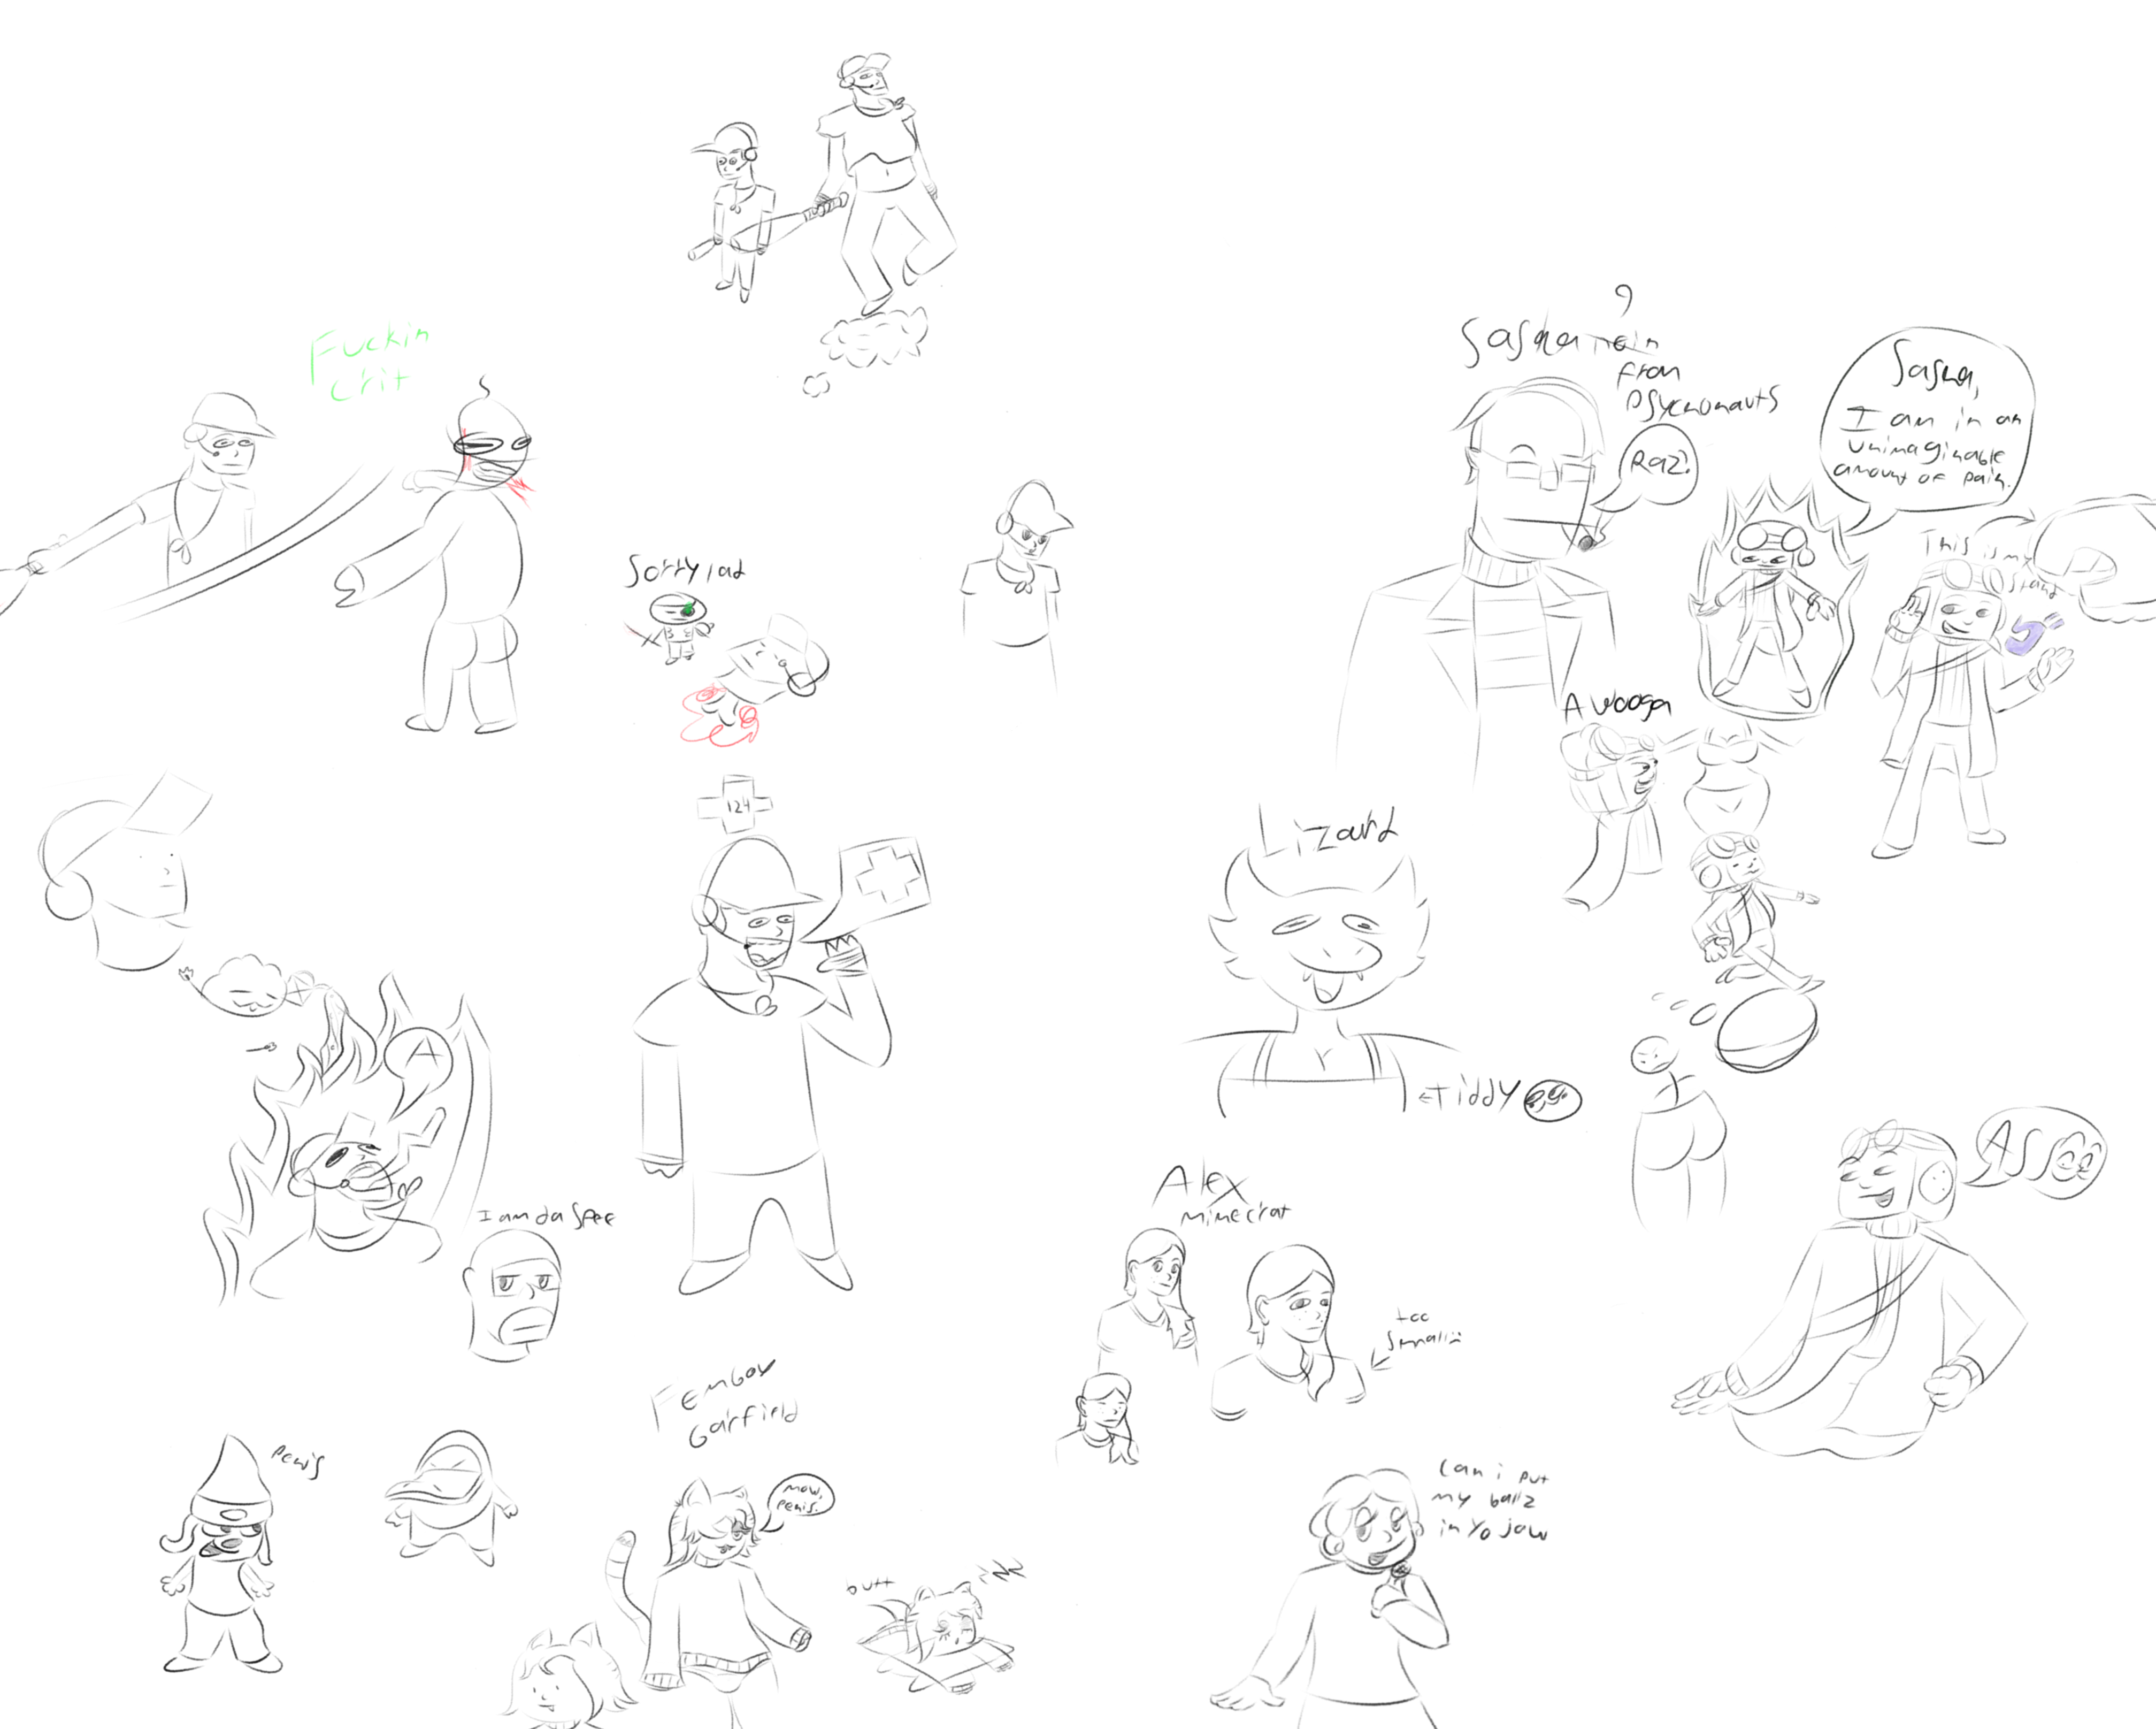 sketchpage #30